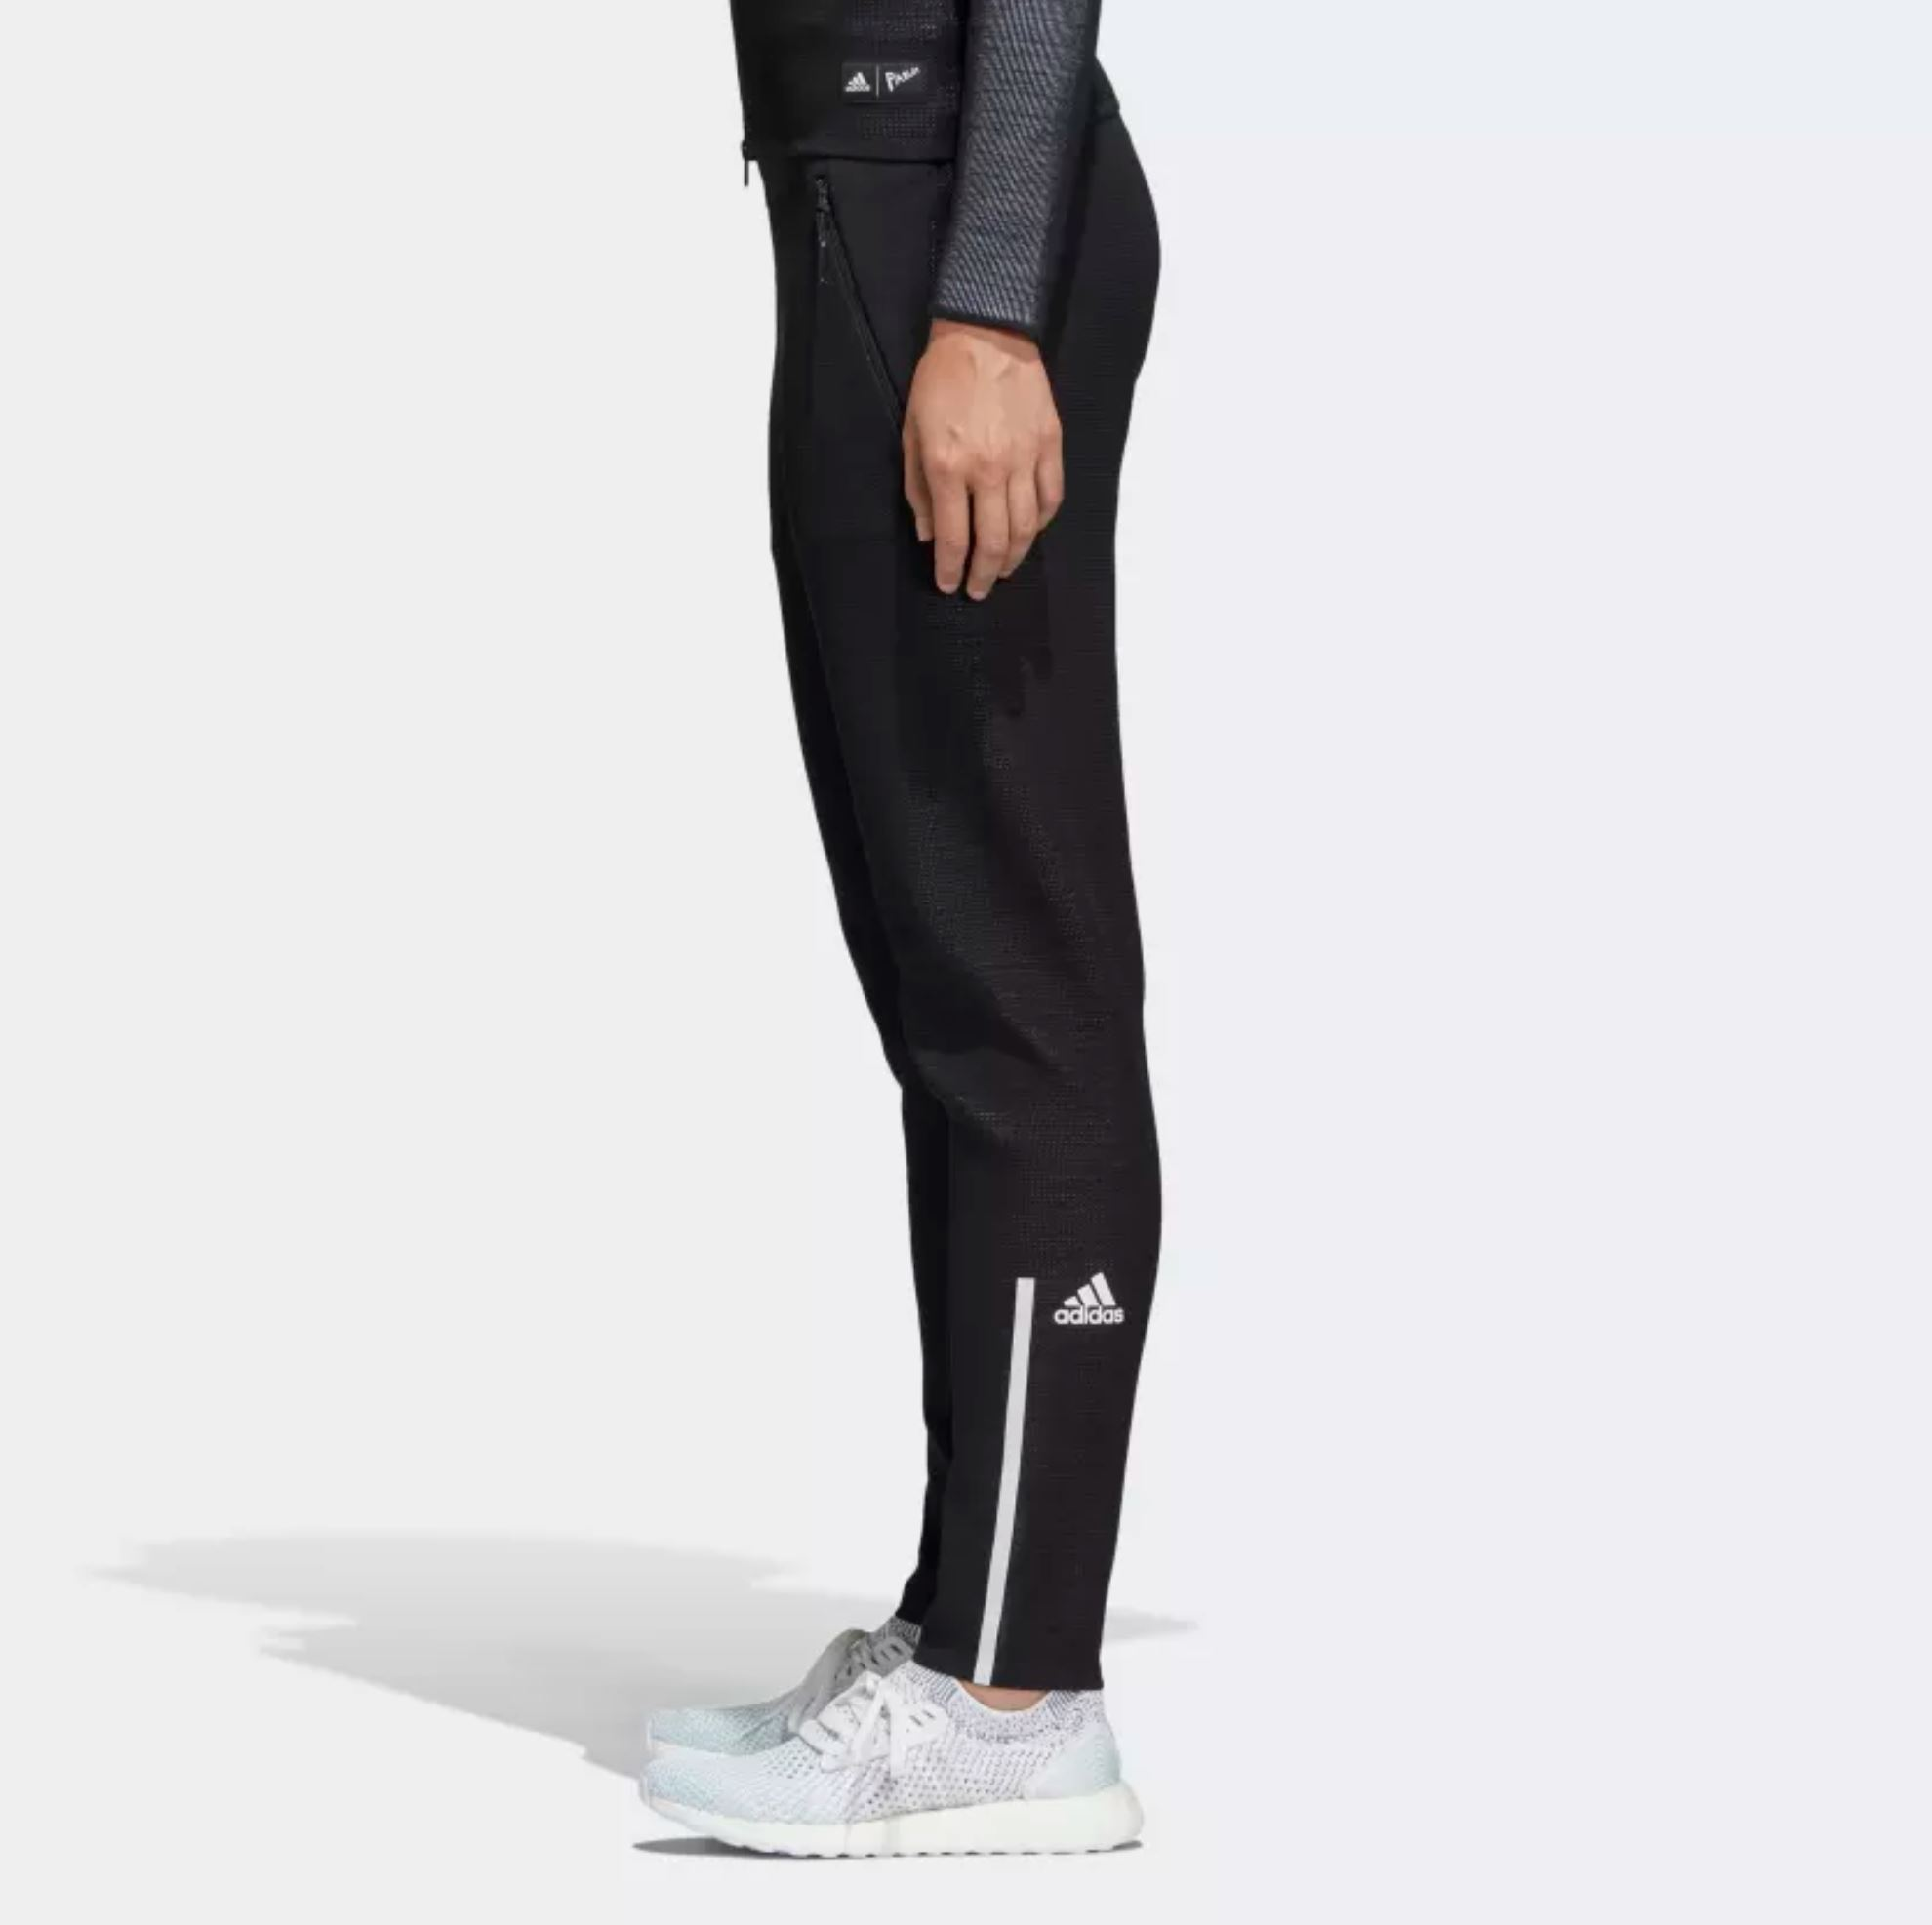 adidas Releases its First Ever ZNE Hoodies and Pants Made